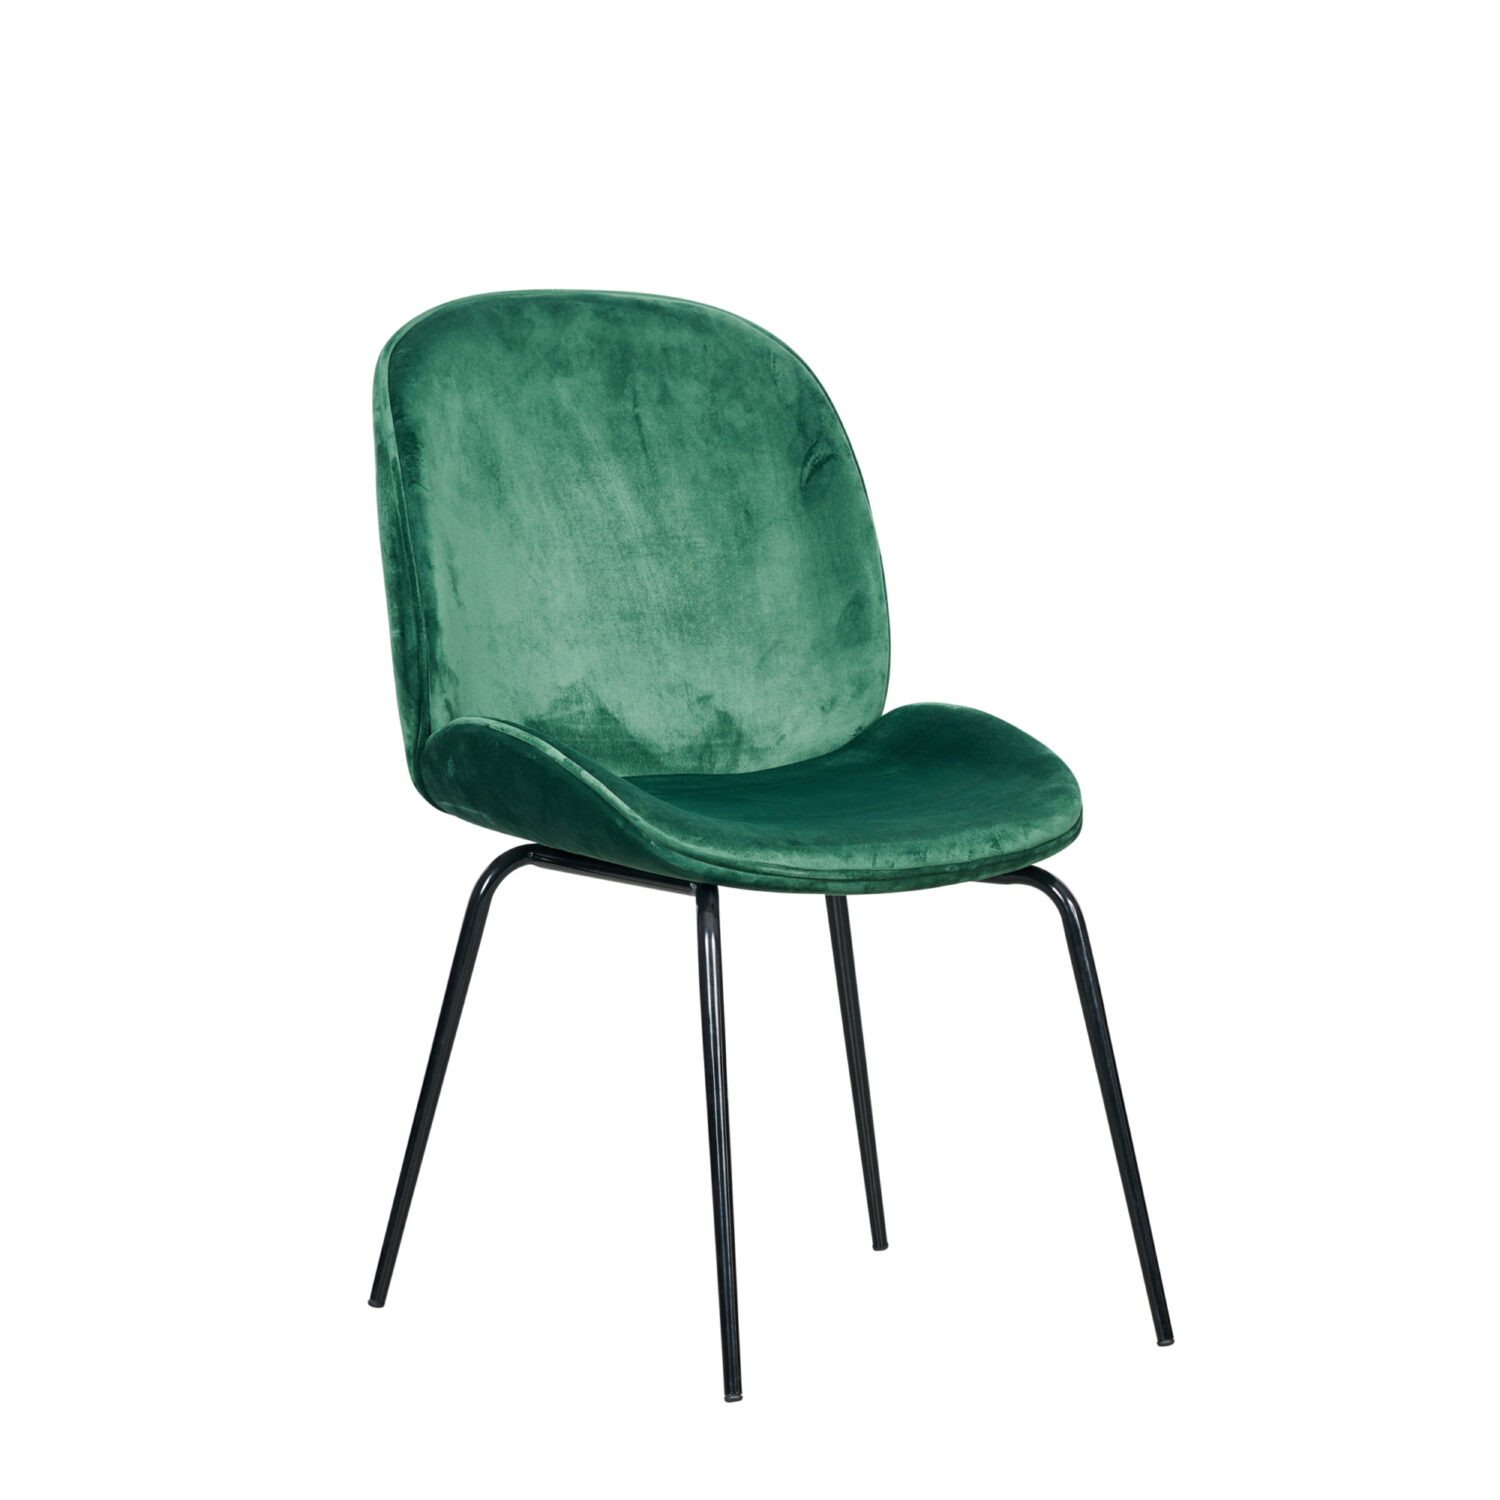 Grace Occasional Chair - Forest Green Seat & Black Legs - Event Artillery